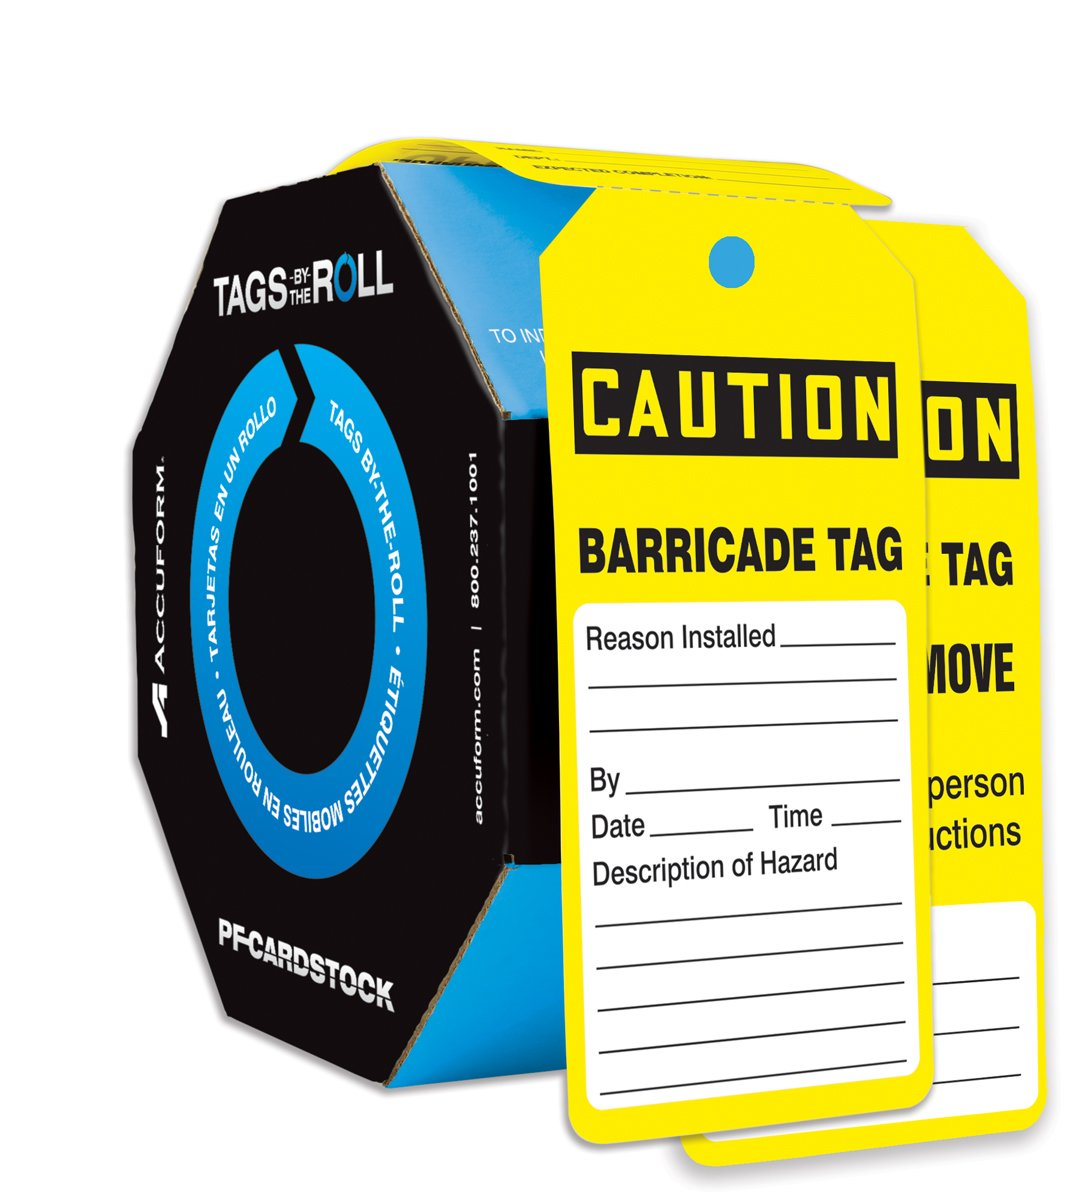 Accuform TAR160 Tags By-The-Roll Inspection and Status Tags, Legend''CAUTION BARRICADE TAG'', 6.25'' Length x 3'' Width x 0.010'' Thickness, PF-Cardstock, Black on Yellow (Pack of 250) by Accuform